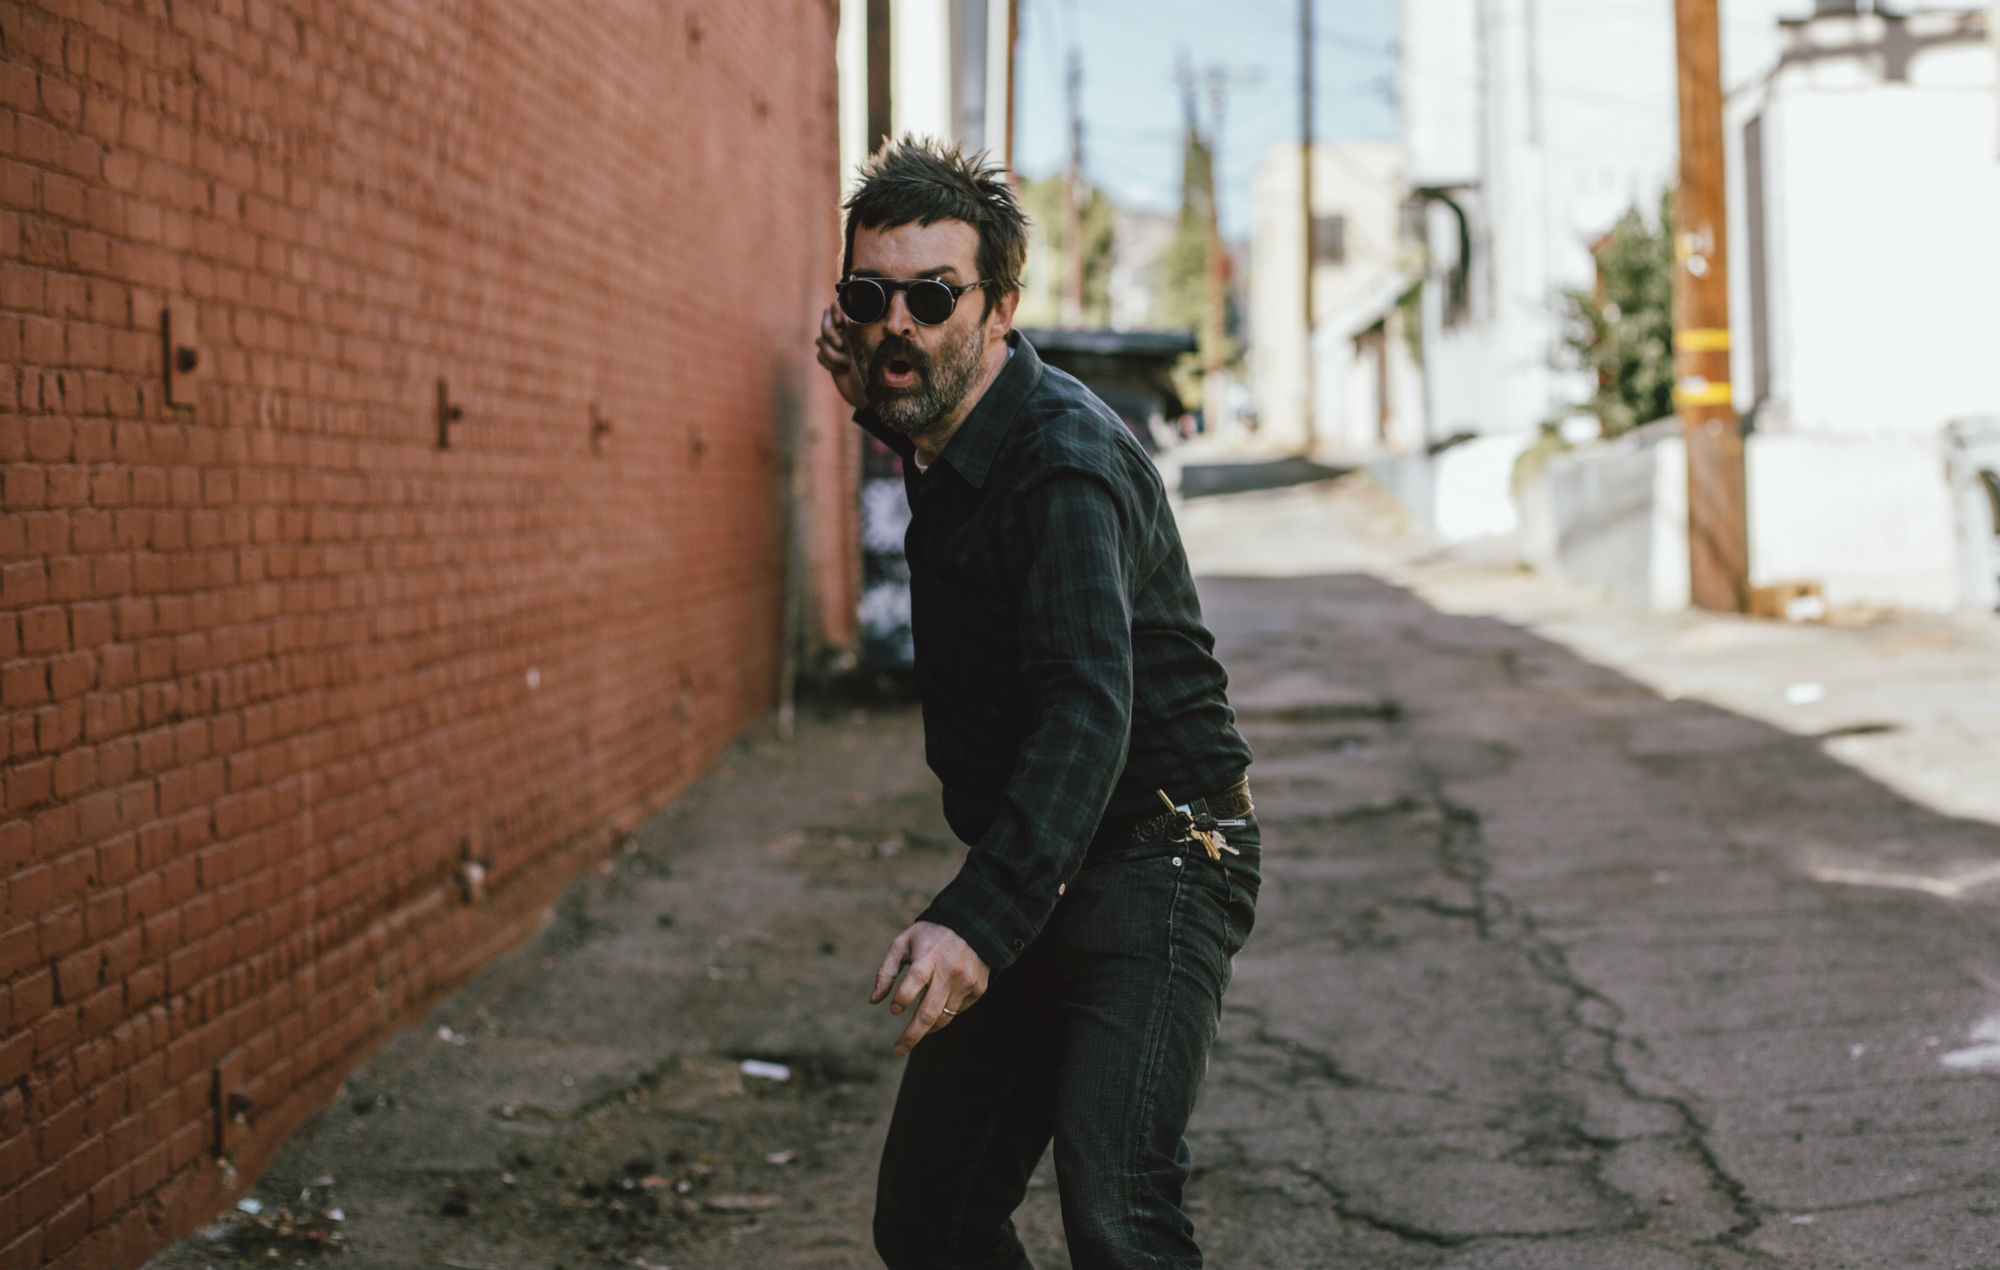 Eels – 'Earth To Dora' review: cautious optimism and bruised romance